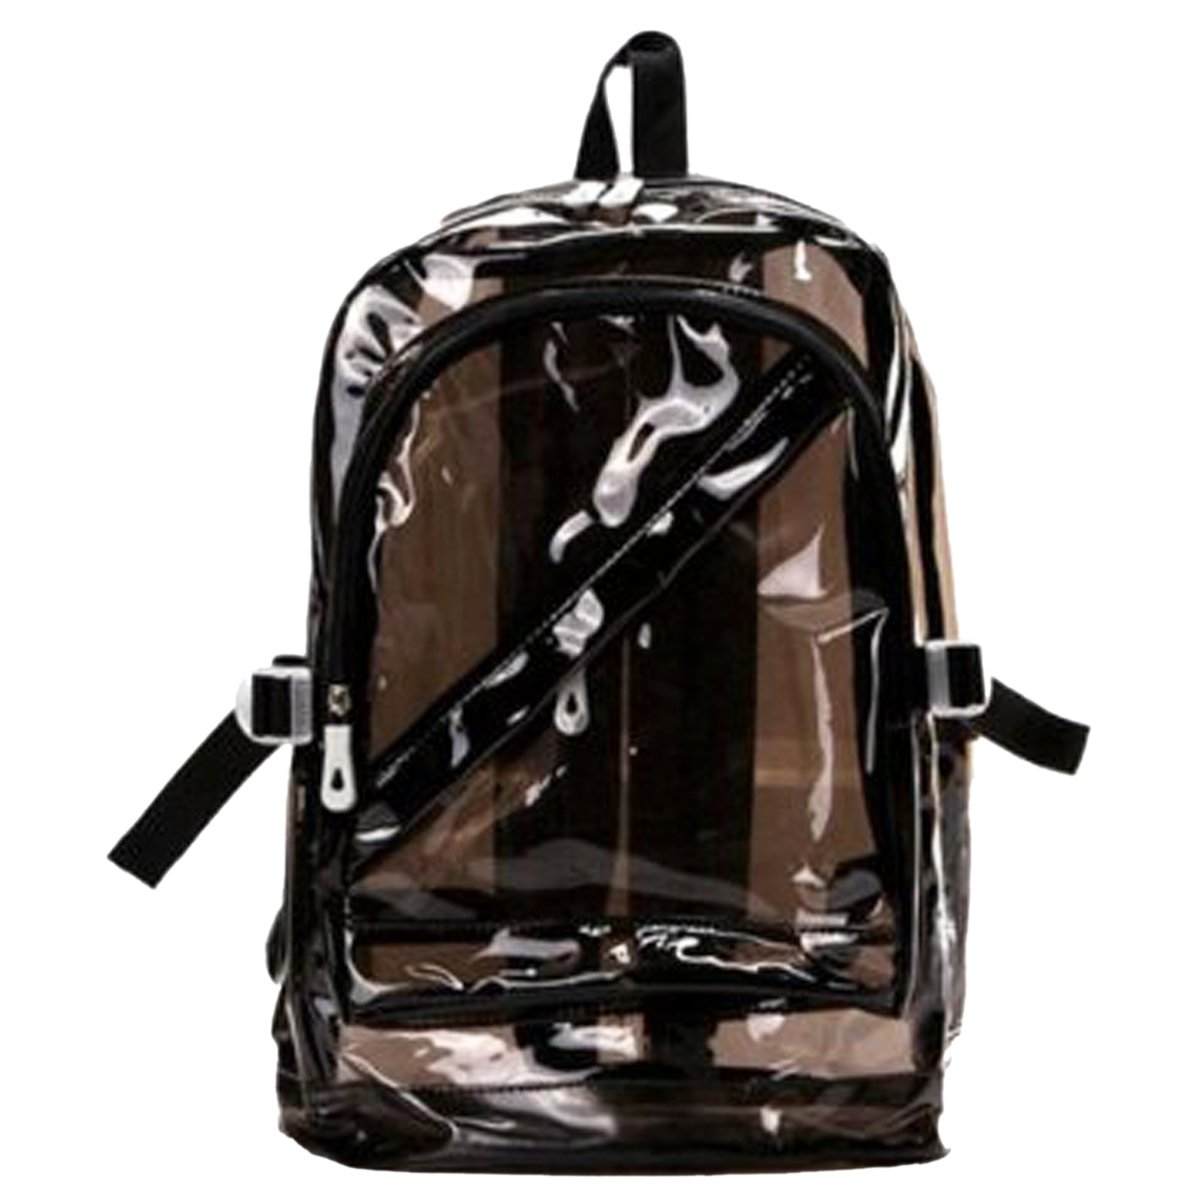 Transparent Clear Plastic Waterproof Backpack for Teenage Girls PVC school bag Shoulders Bag riding tribe motorcycle racing jacket motocross jaqueta motoqueiro blouson campera moto liner protective jackets